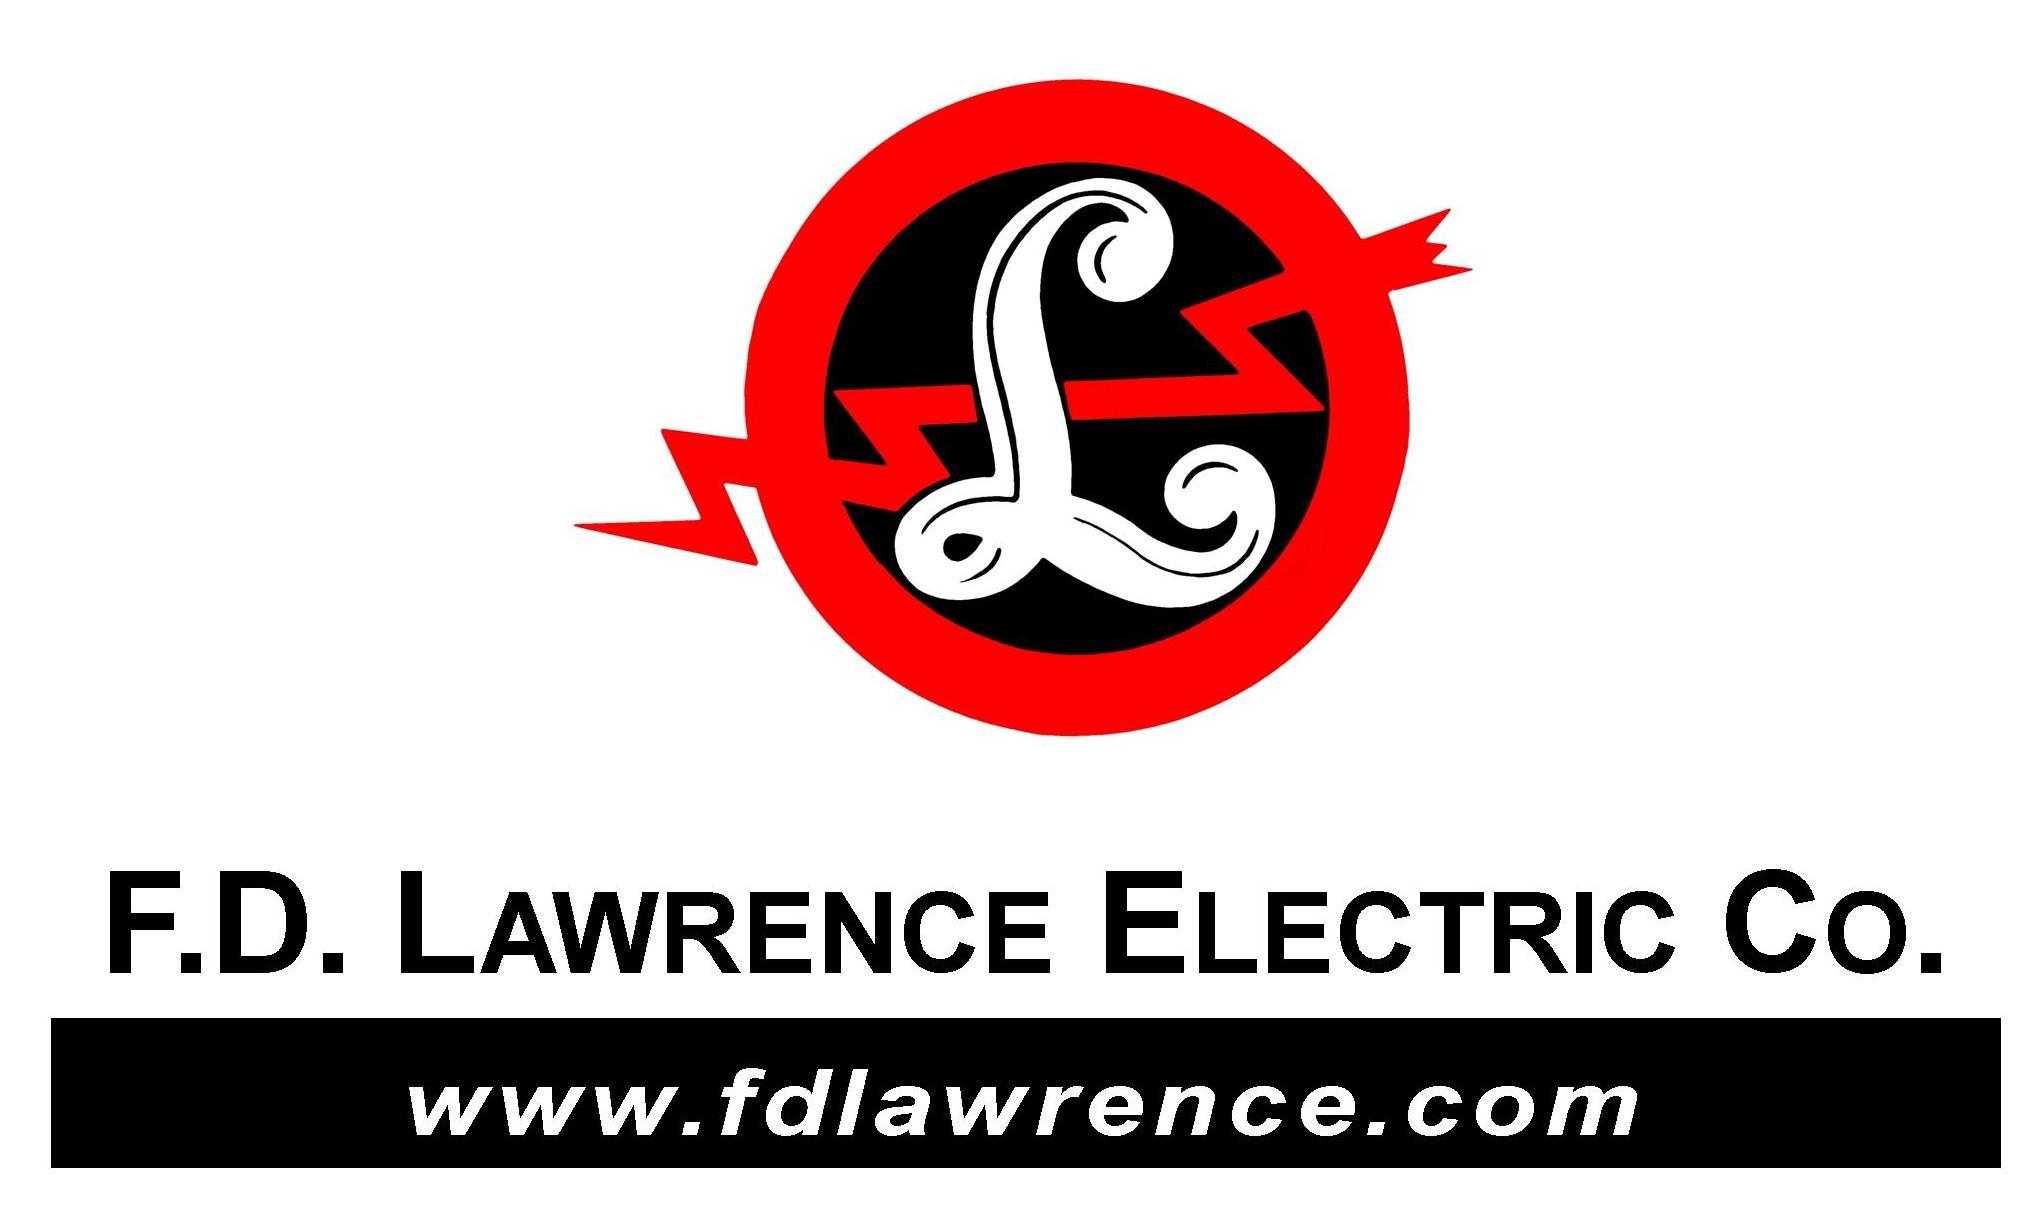 F.D. Lawrence Electric logo